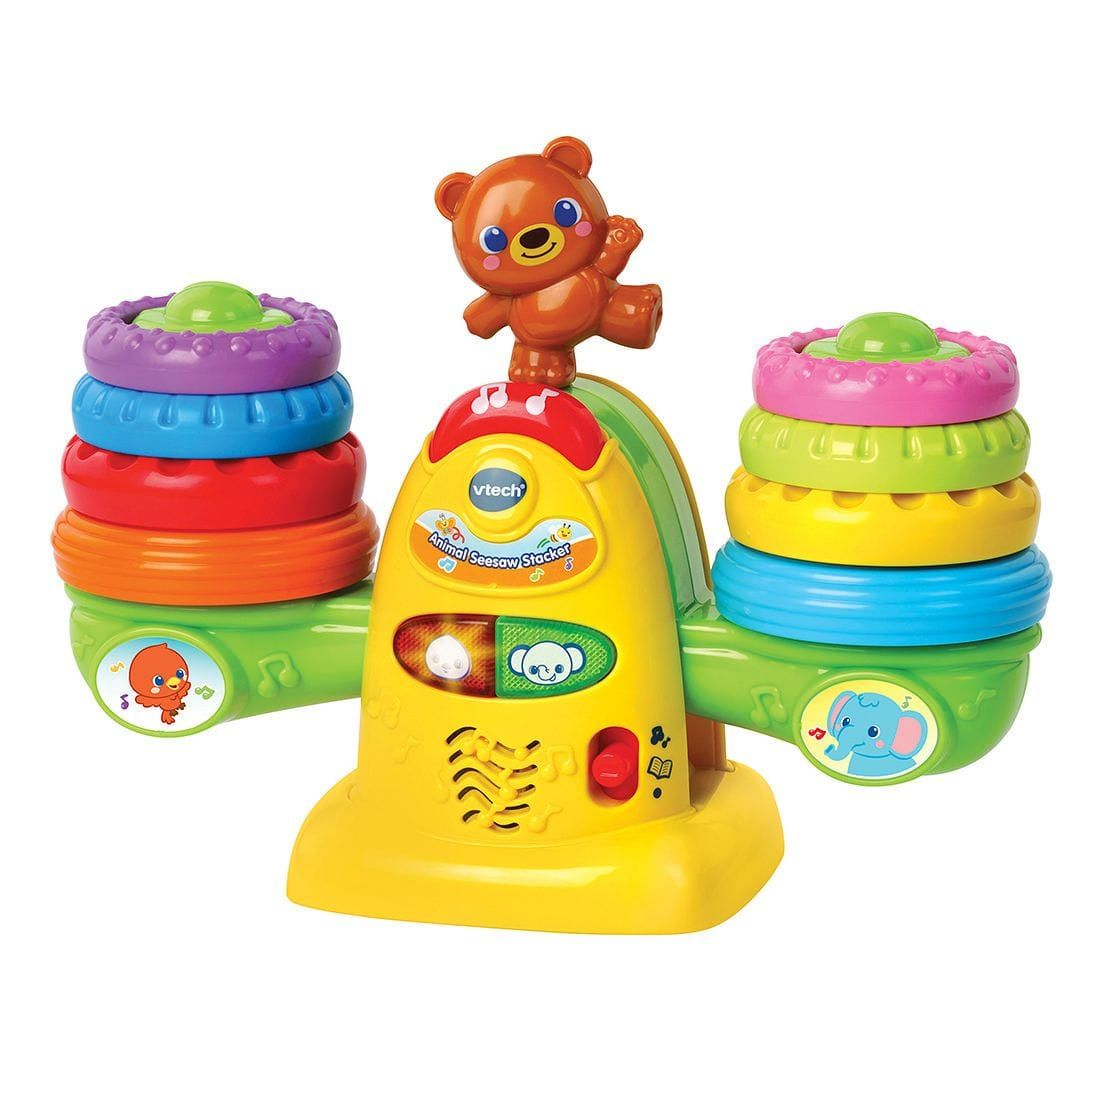 Vtech Baby Animal Seesaw Stacker Vtech Baby Baby Play Toys